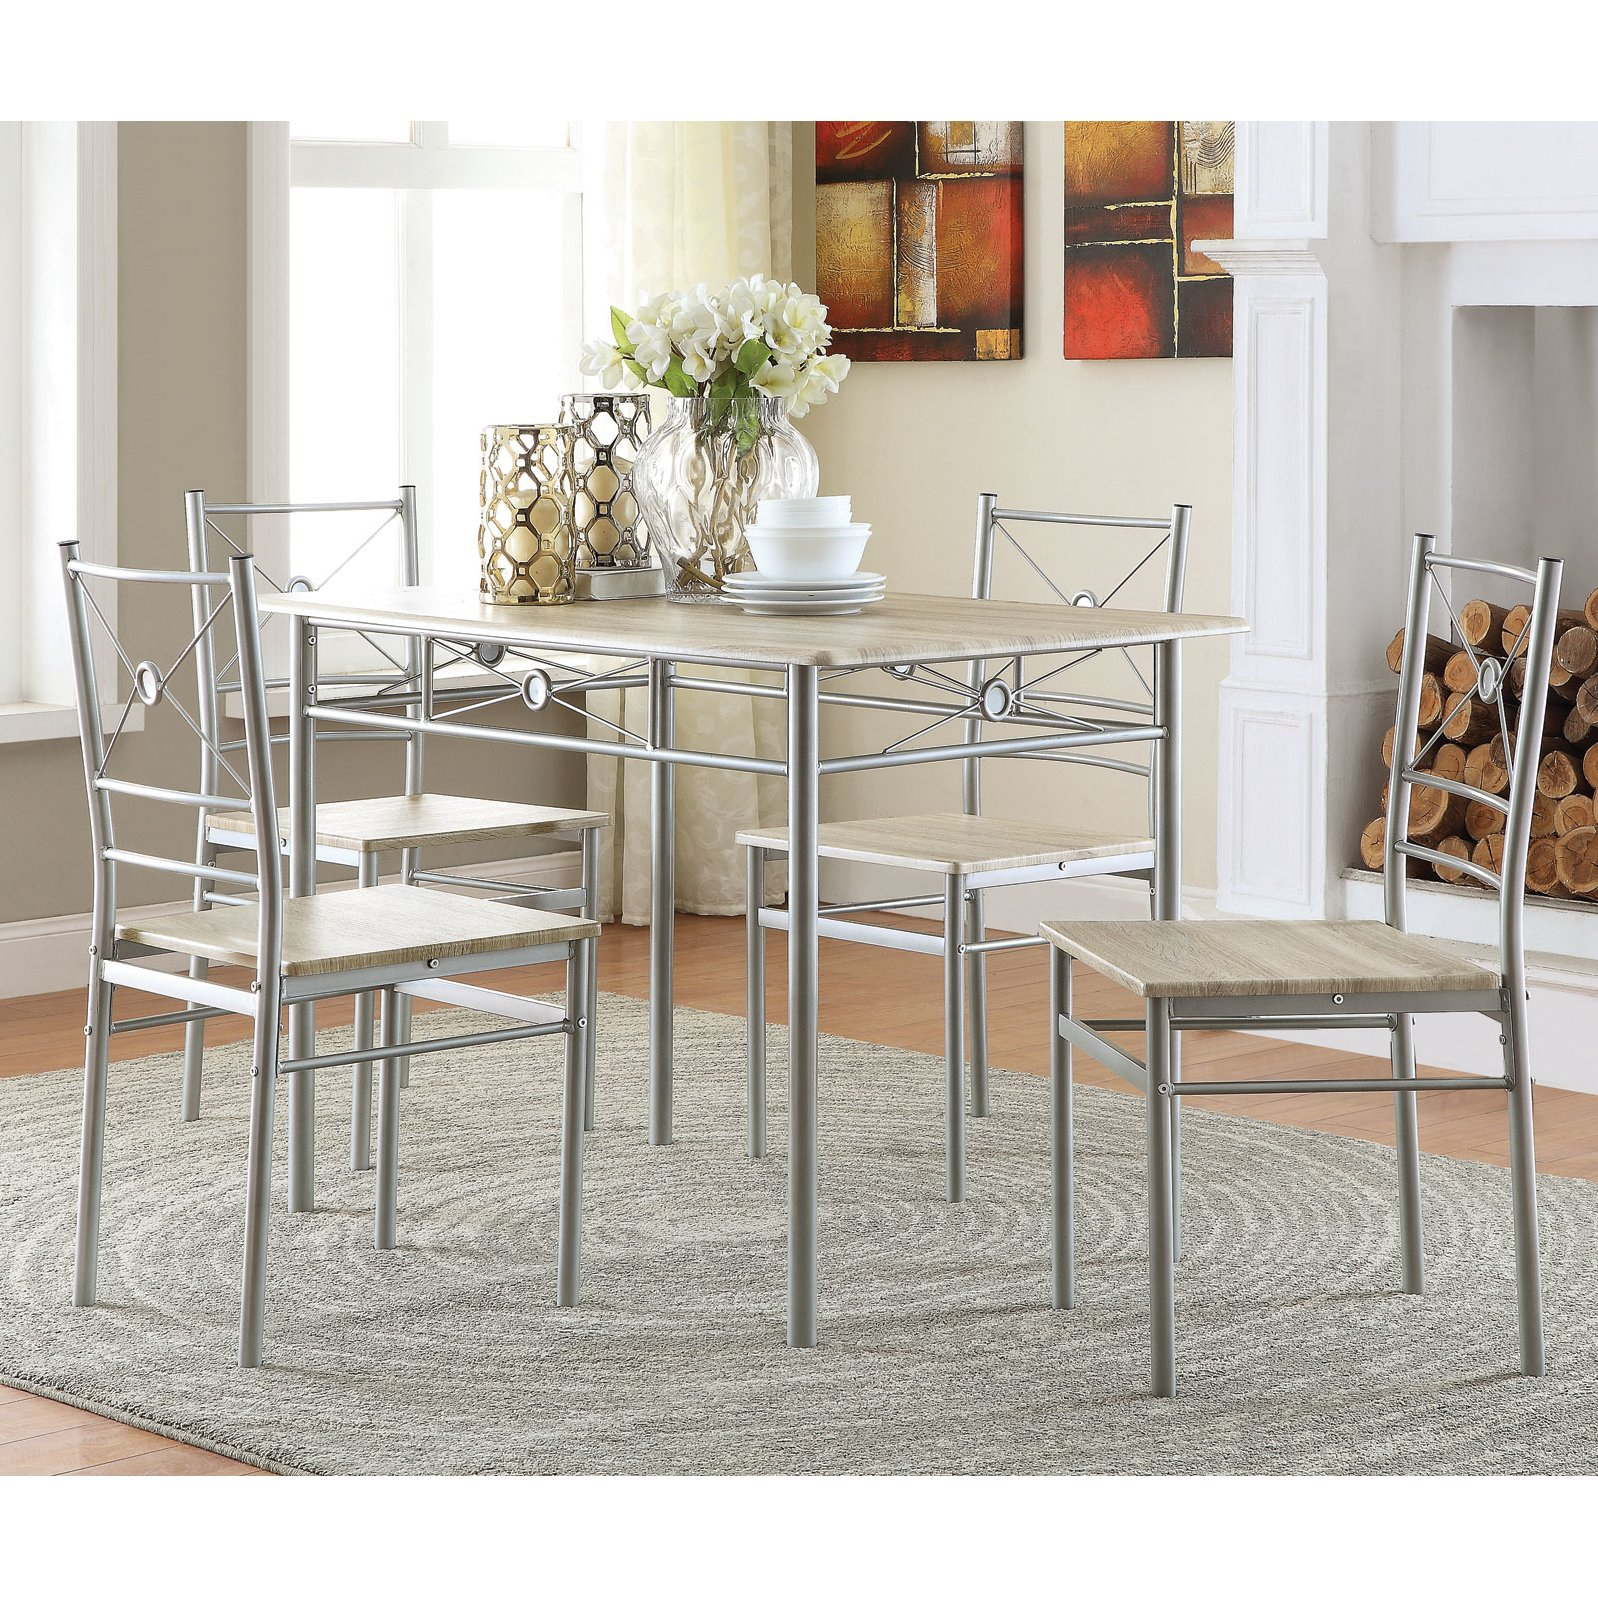 Details About Kieffer 5 Piece Dining Table And Chairs Beautiful Kitchen  Room Furniture Set With Most Recently Released Kieffer 5 Piece Dining Sets (Photo 1 of 20)